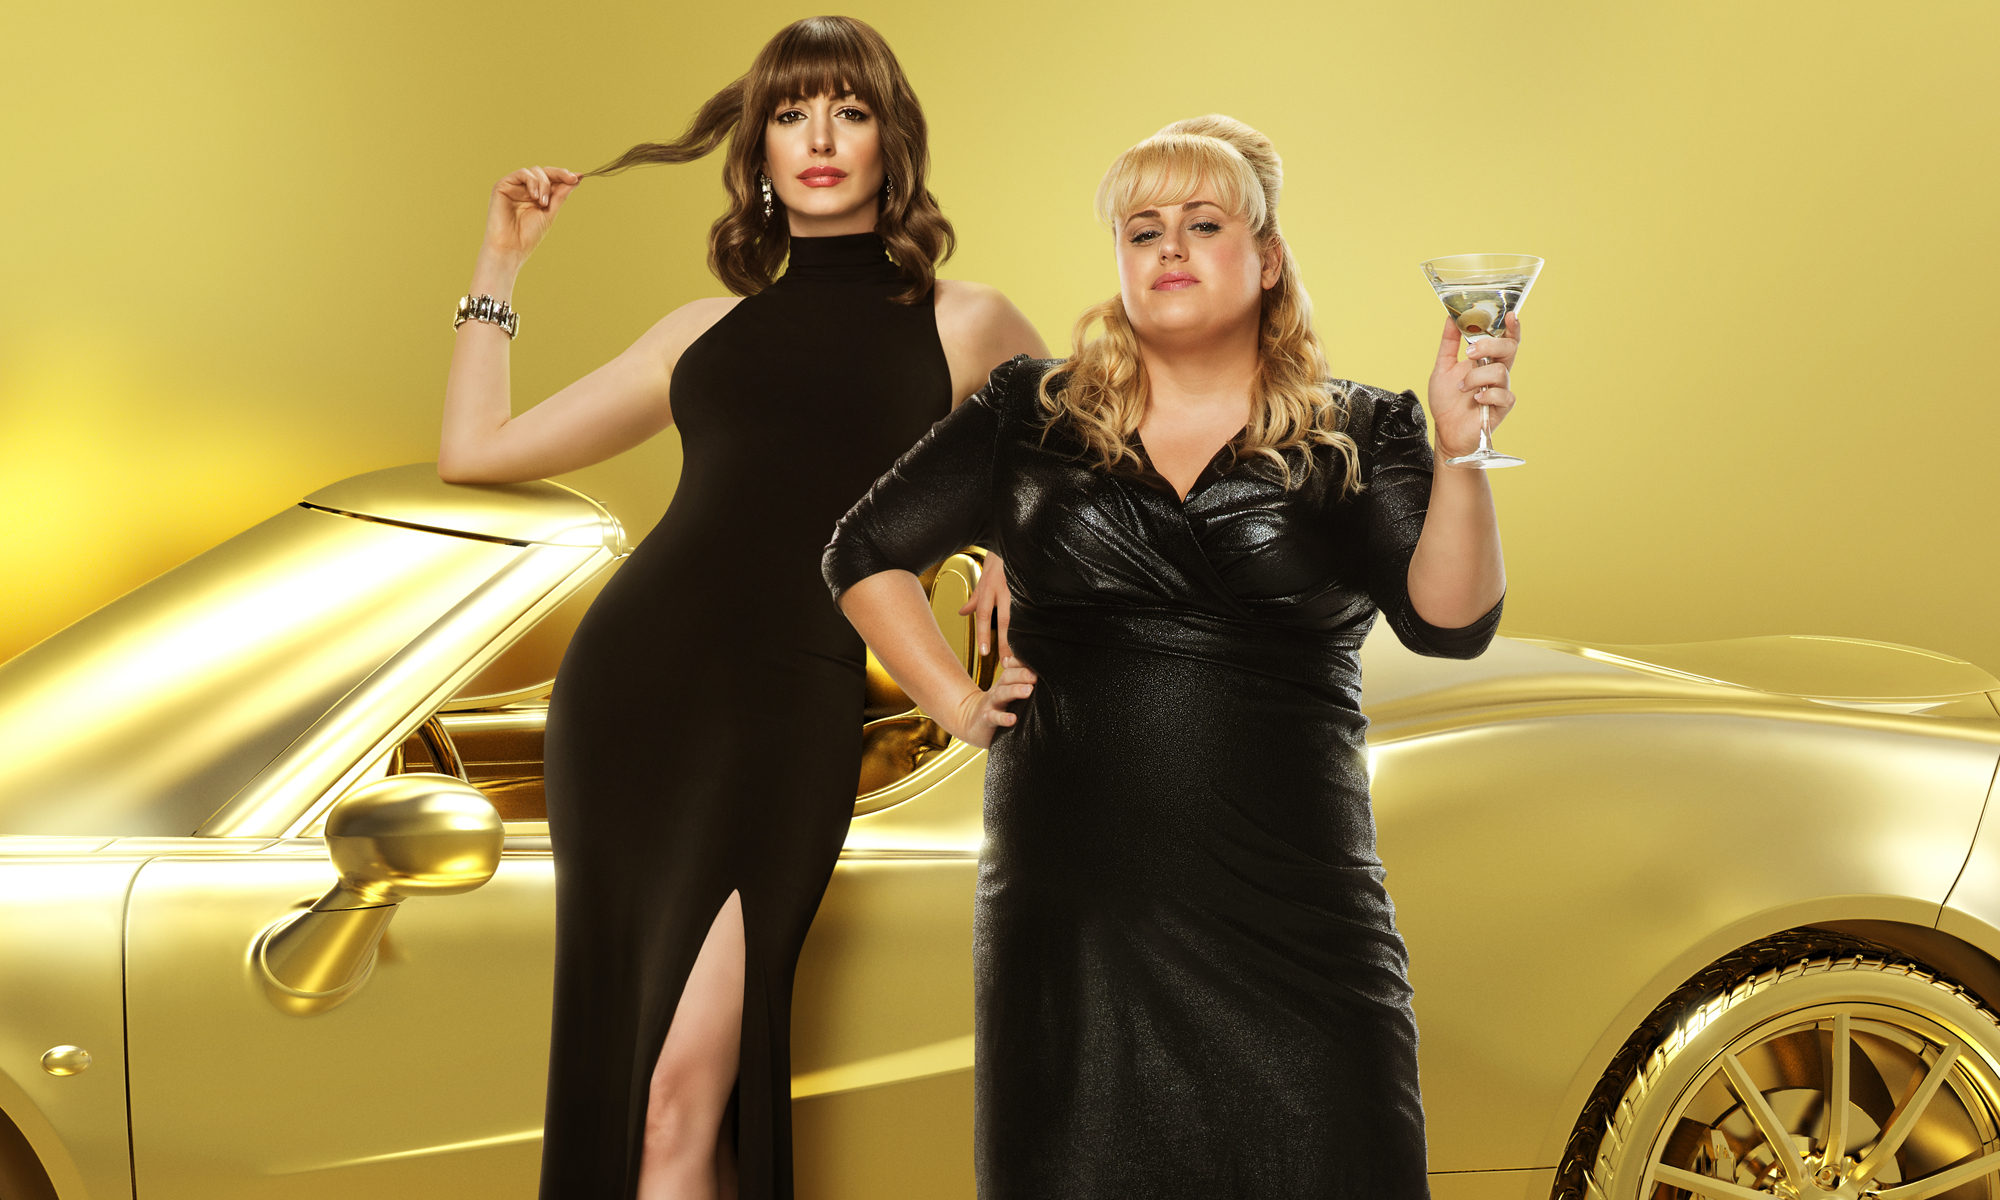 Anne Hathaway and Rebel Wilson star in The Hustle